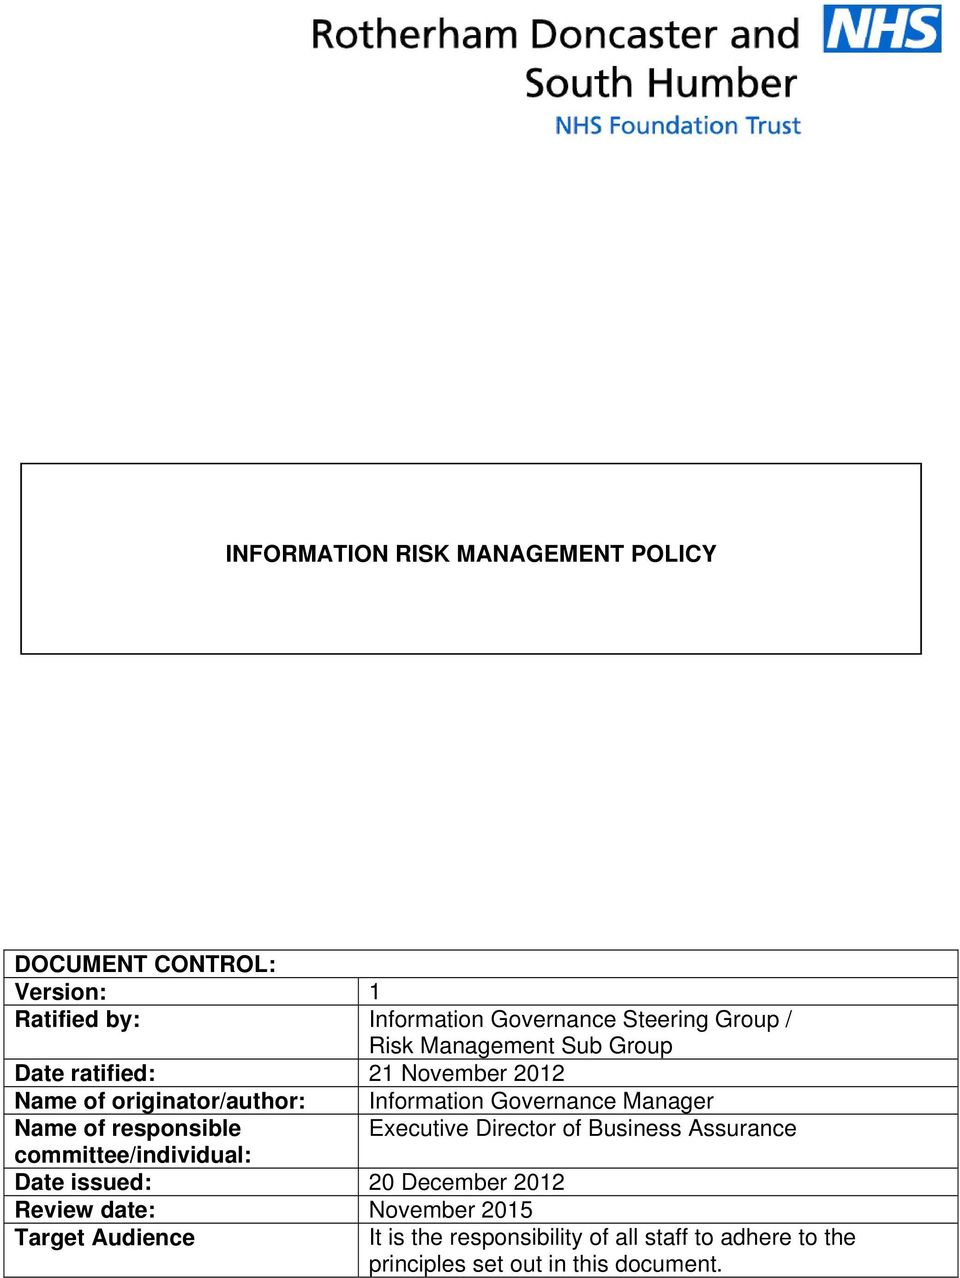 Executive Director of Business Assurance committee/individual: Date issued: 20 December 2012 Review date: